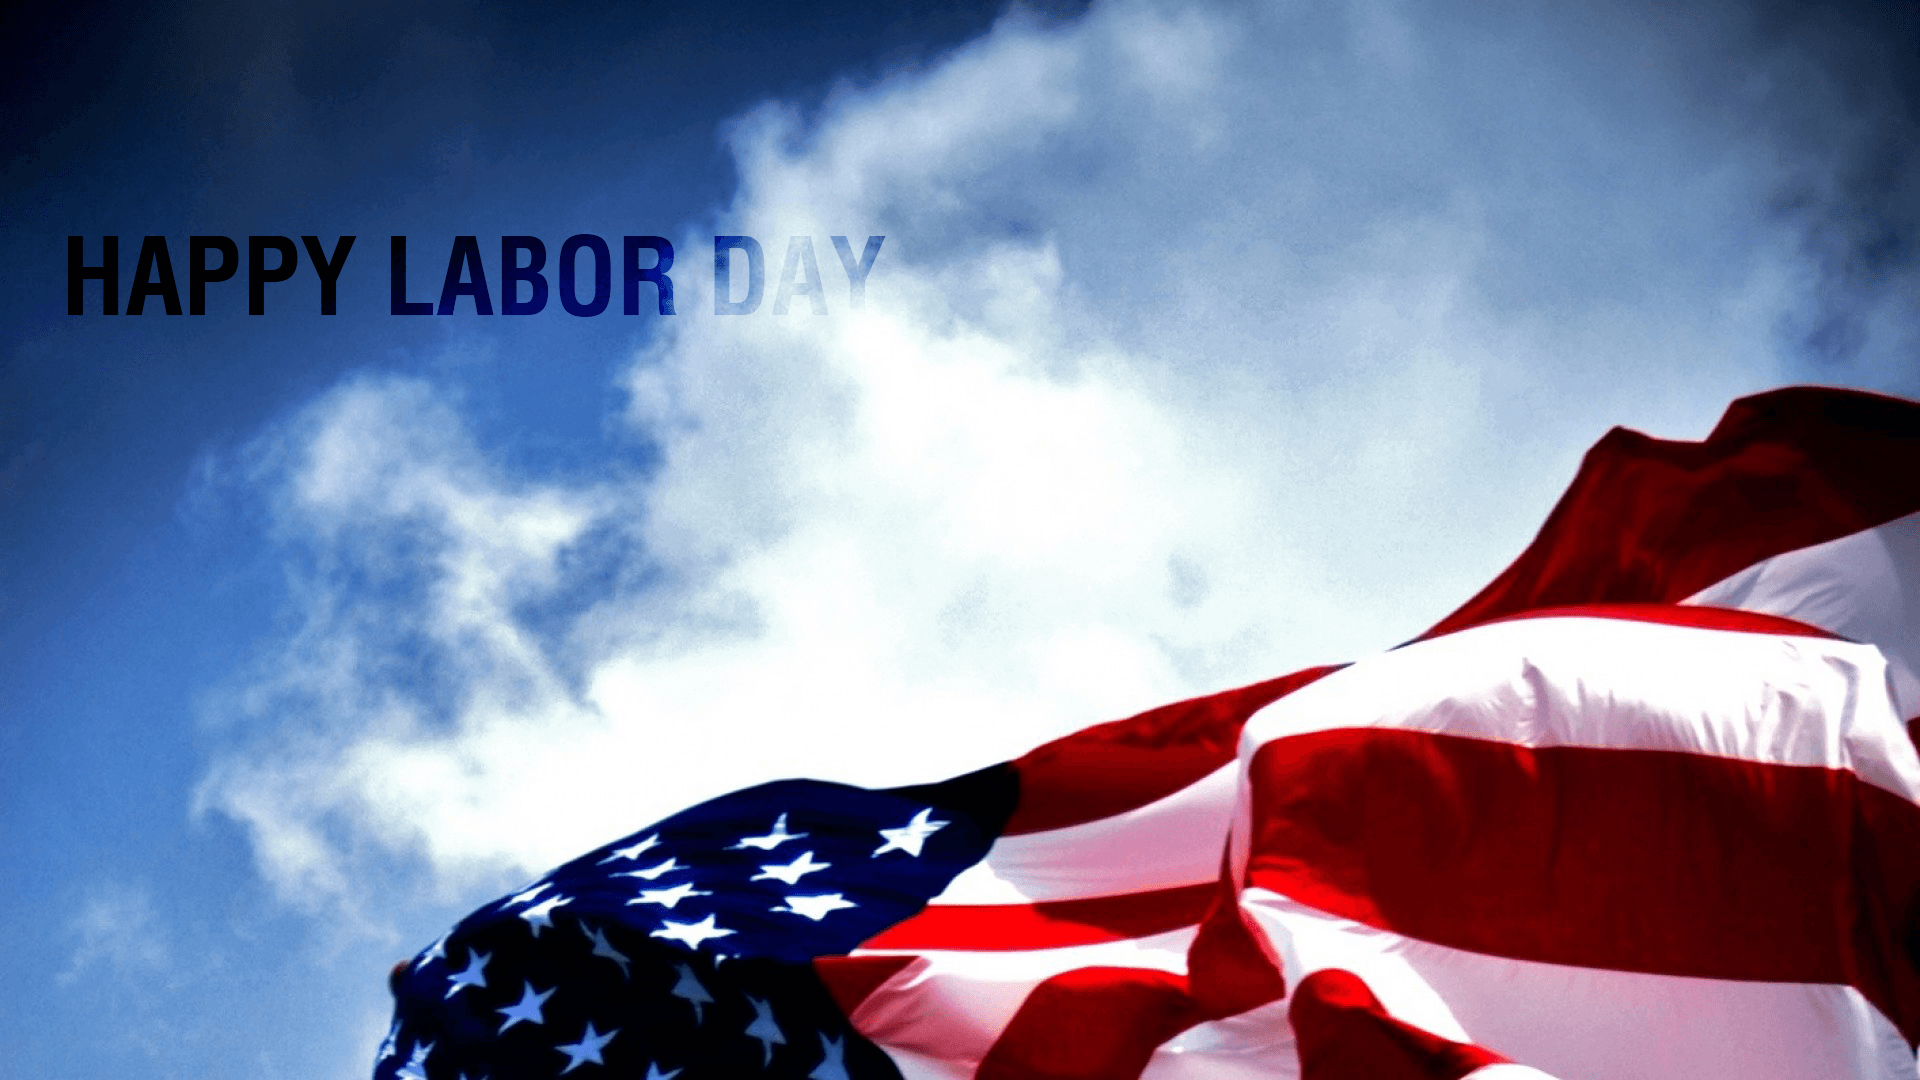 american labor day wallpaper